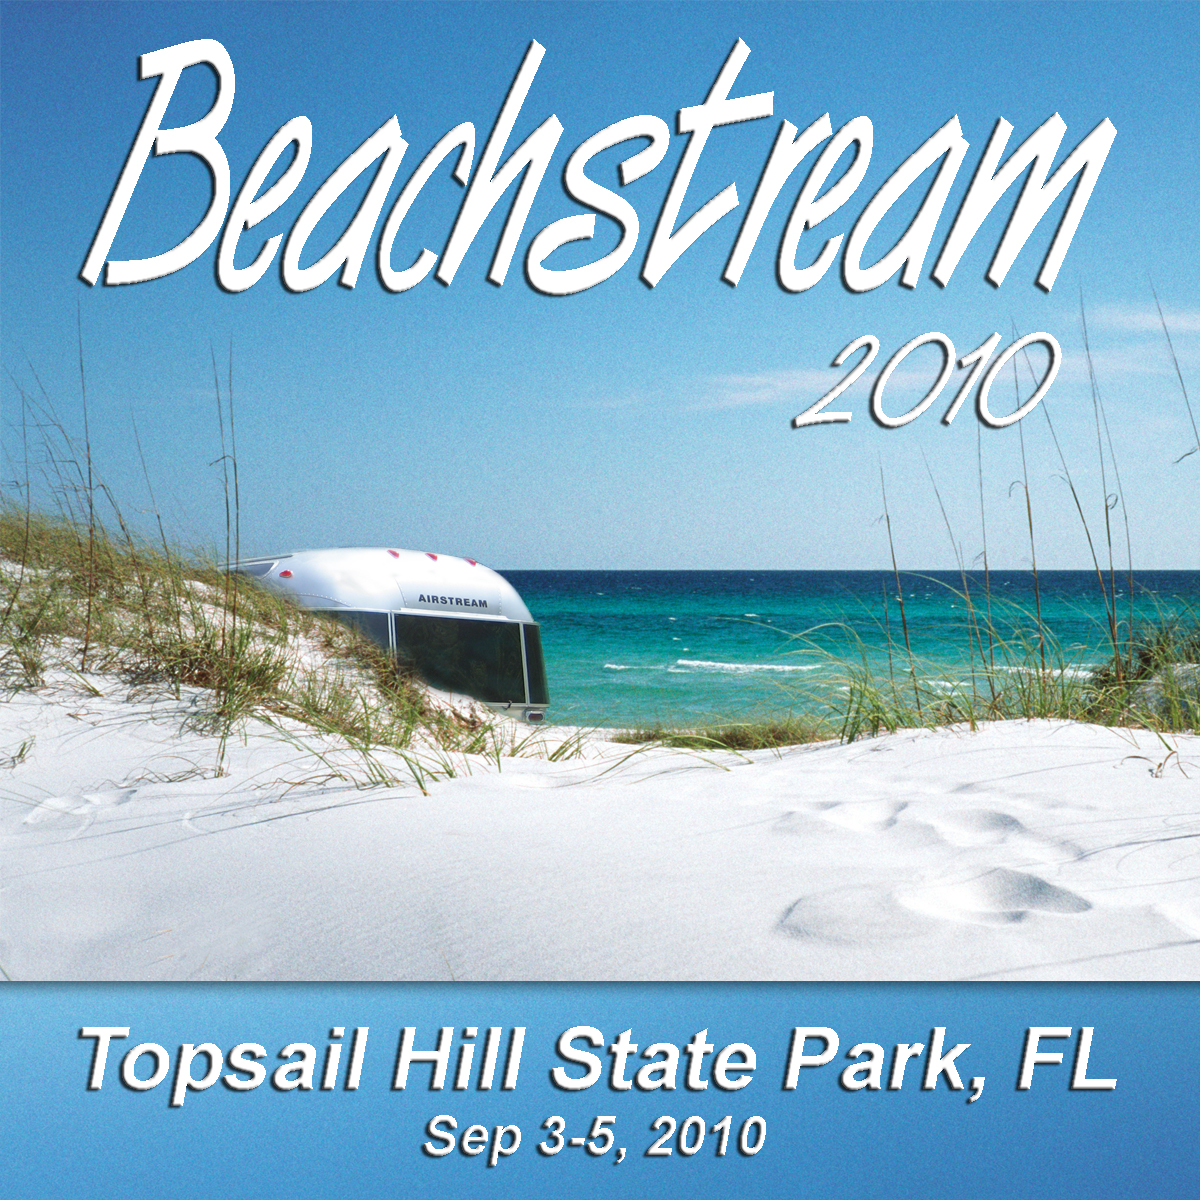 Click image for larger version  Name:Beachstream1.jpg Views:211 Size:1.68 MB ID:94541